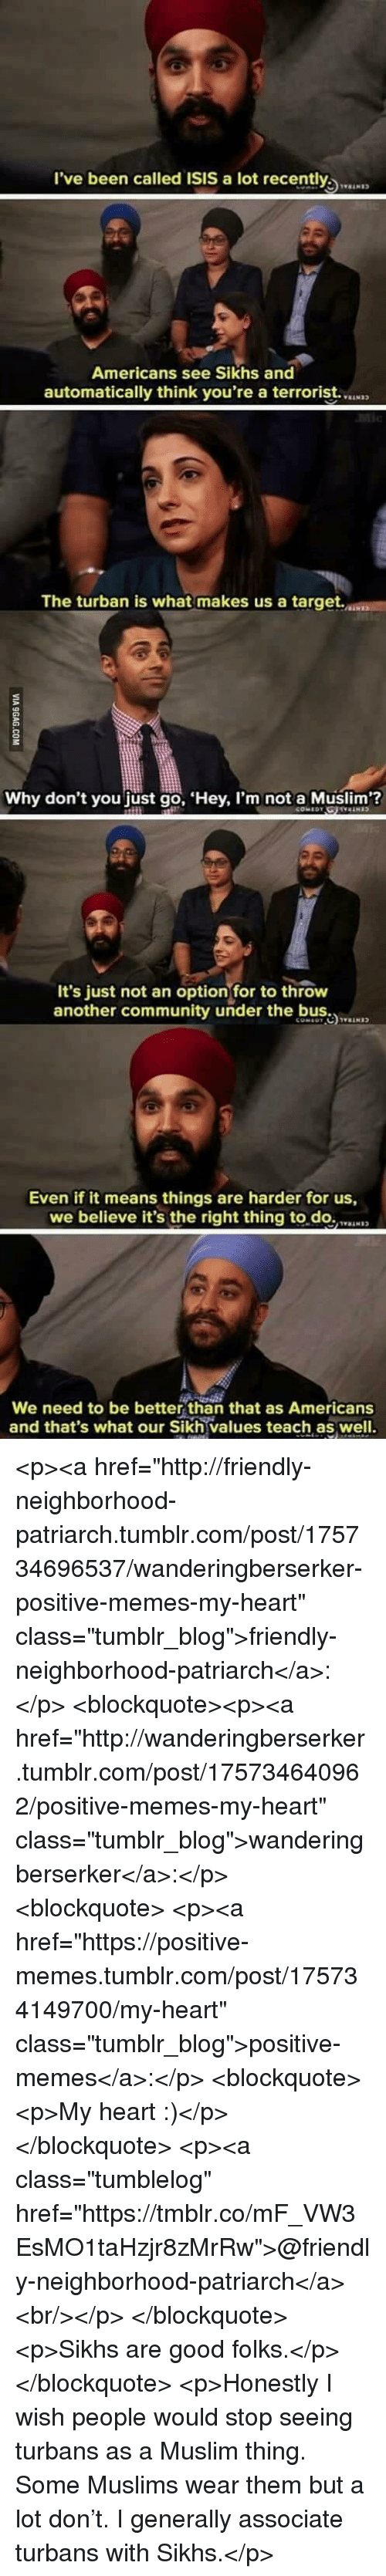 "better than that: l've been called ISIS a lot recently  Americans see Sikhs and  automatically think you're a terrorist.  The turban is what makes us a target.  Why don't you just go, Hey, I'm not a Muslim?  It's just not an optionfor to throw  another community under the b  Even if it means things are harder for us,  we believe it's the right thing to.do.N  We need to be better than that as Americans  and that's what our Sikh values teach as well. <p><a href=""http://friendly-neighborhood-patriarch.tumblr.com/post/175734696537/wanderingberserker-positive-memes-my-heart"" class=""tumblr_blog"">friendly-neighborhood-patriarch</a>:</p>  <blockquote><p><a href=""http://wanderingberserker.tumblr.com/post/175734640962/positive-memes-my-heart"" class=""tumblr_blog"">wanderingberserker</a>:</p><blockquote> <p><a href=""https://positive-memes.tumblr.com/post/175734149700/my-heart"" class=""tumblr_blog"">positive-memes</a>:</p> <blockquote><p>My heart :)</p></blockquote> <p><a class=""tumblelog"" href=""https://tmblr.co/mF_VW3EsMO1taHzjr8zMrRw"">@friendly-neighborhood-patriarch</a><br/></p> </blockquote> <p>Sikhs are good folks.</p></blockquote>  <p>Honestly I wish people would stop seeing turbans as a Muslim thing. Some Muslims wear them but a lot don't. I generally associate turbans with Sikhs.</p>"